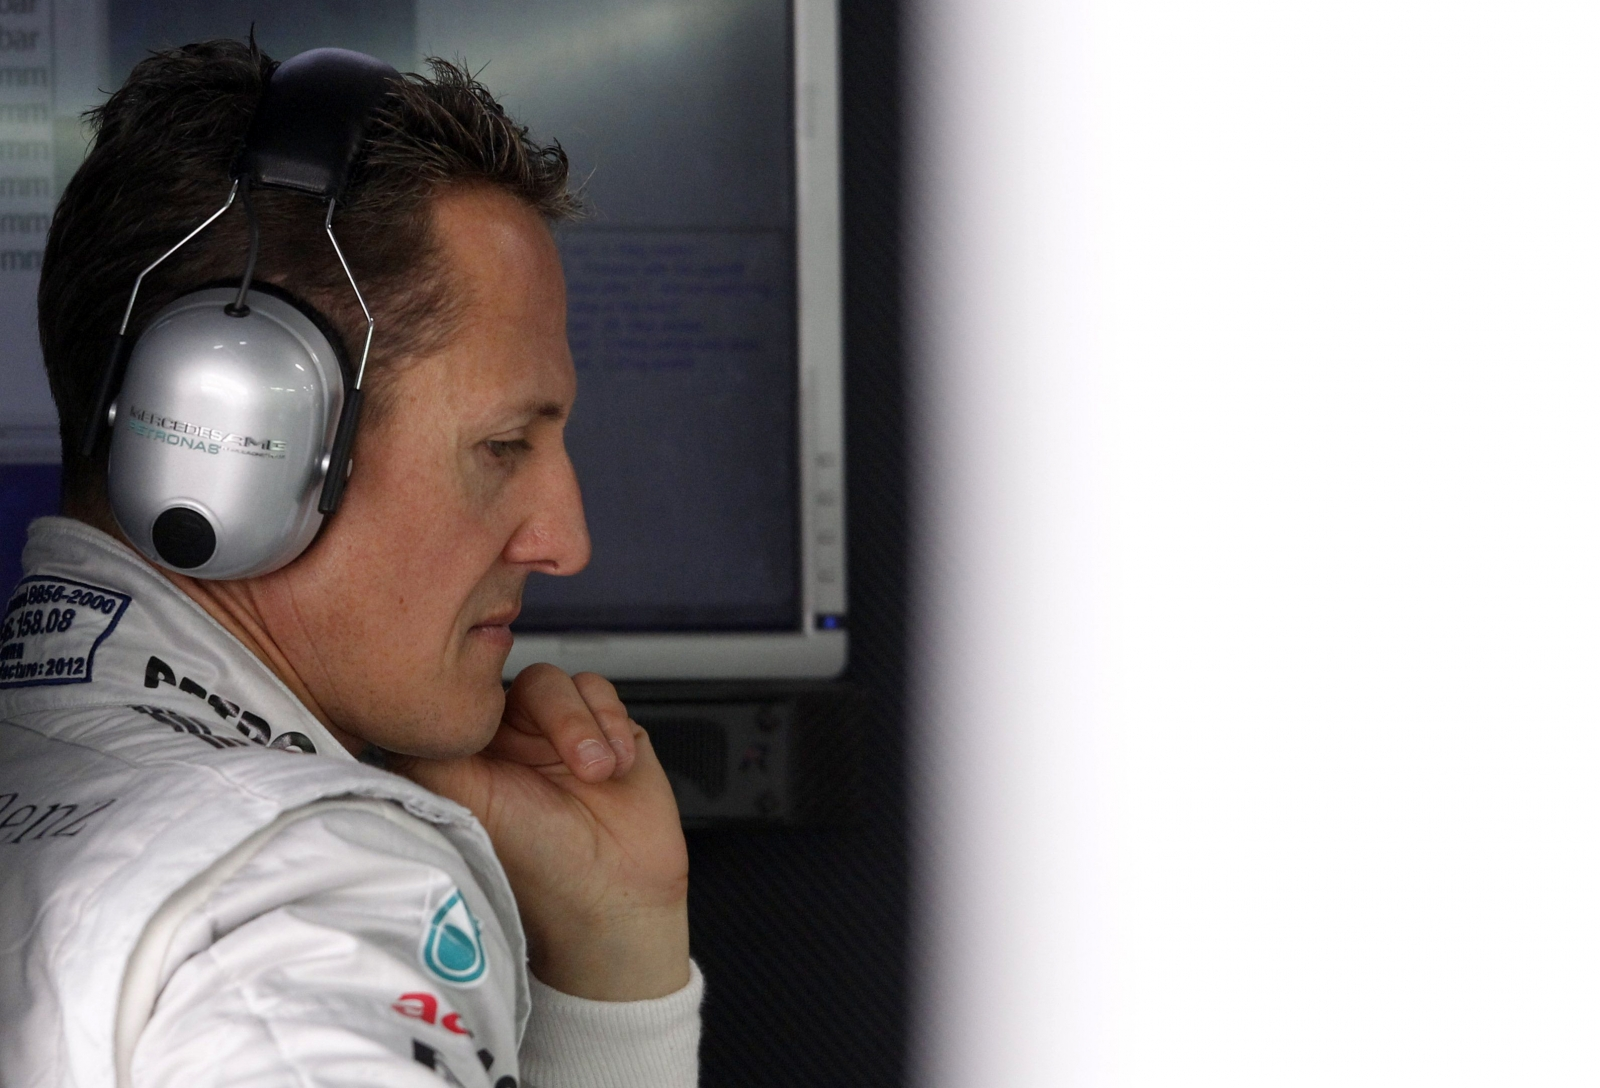 Michael Schumacher may never recover